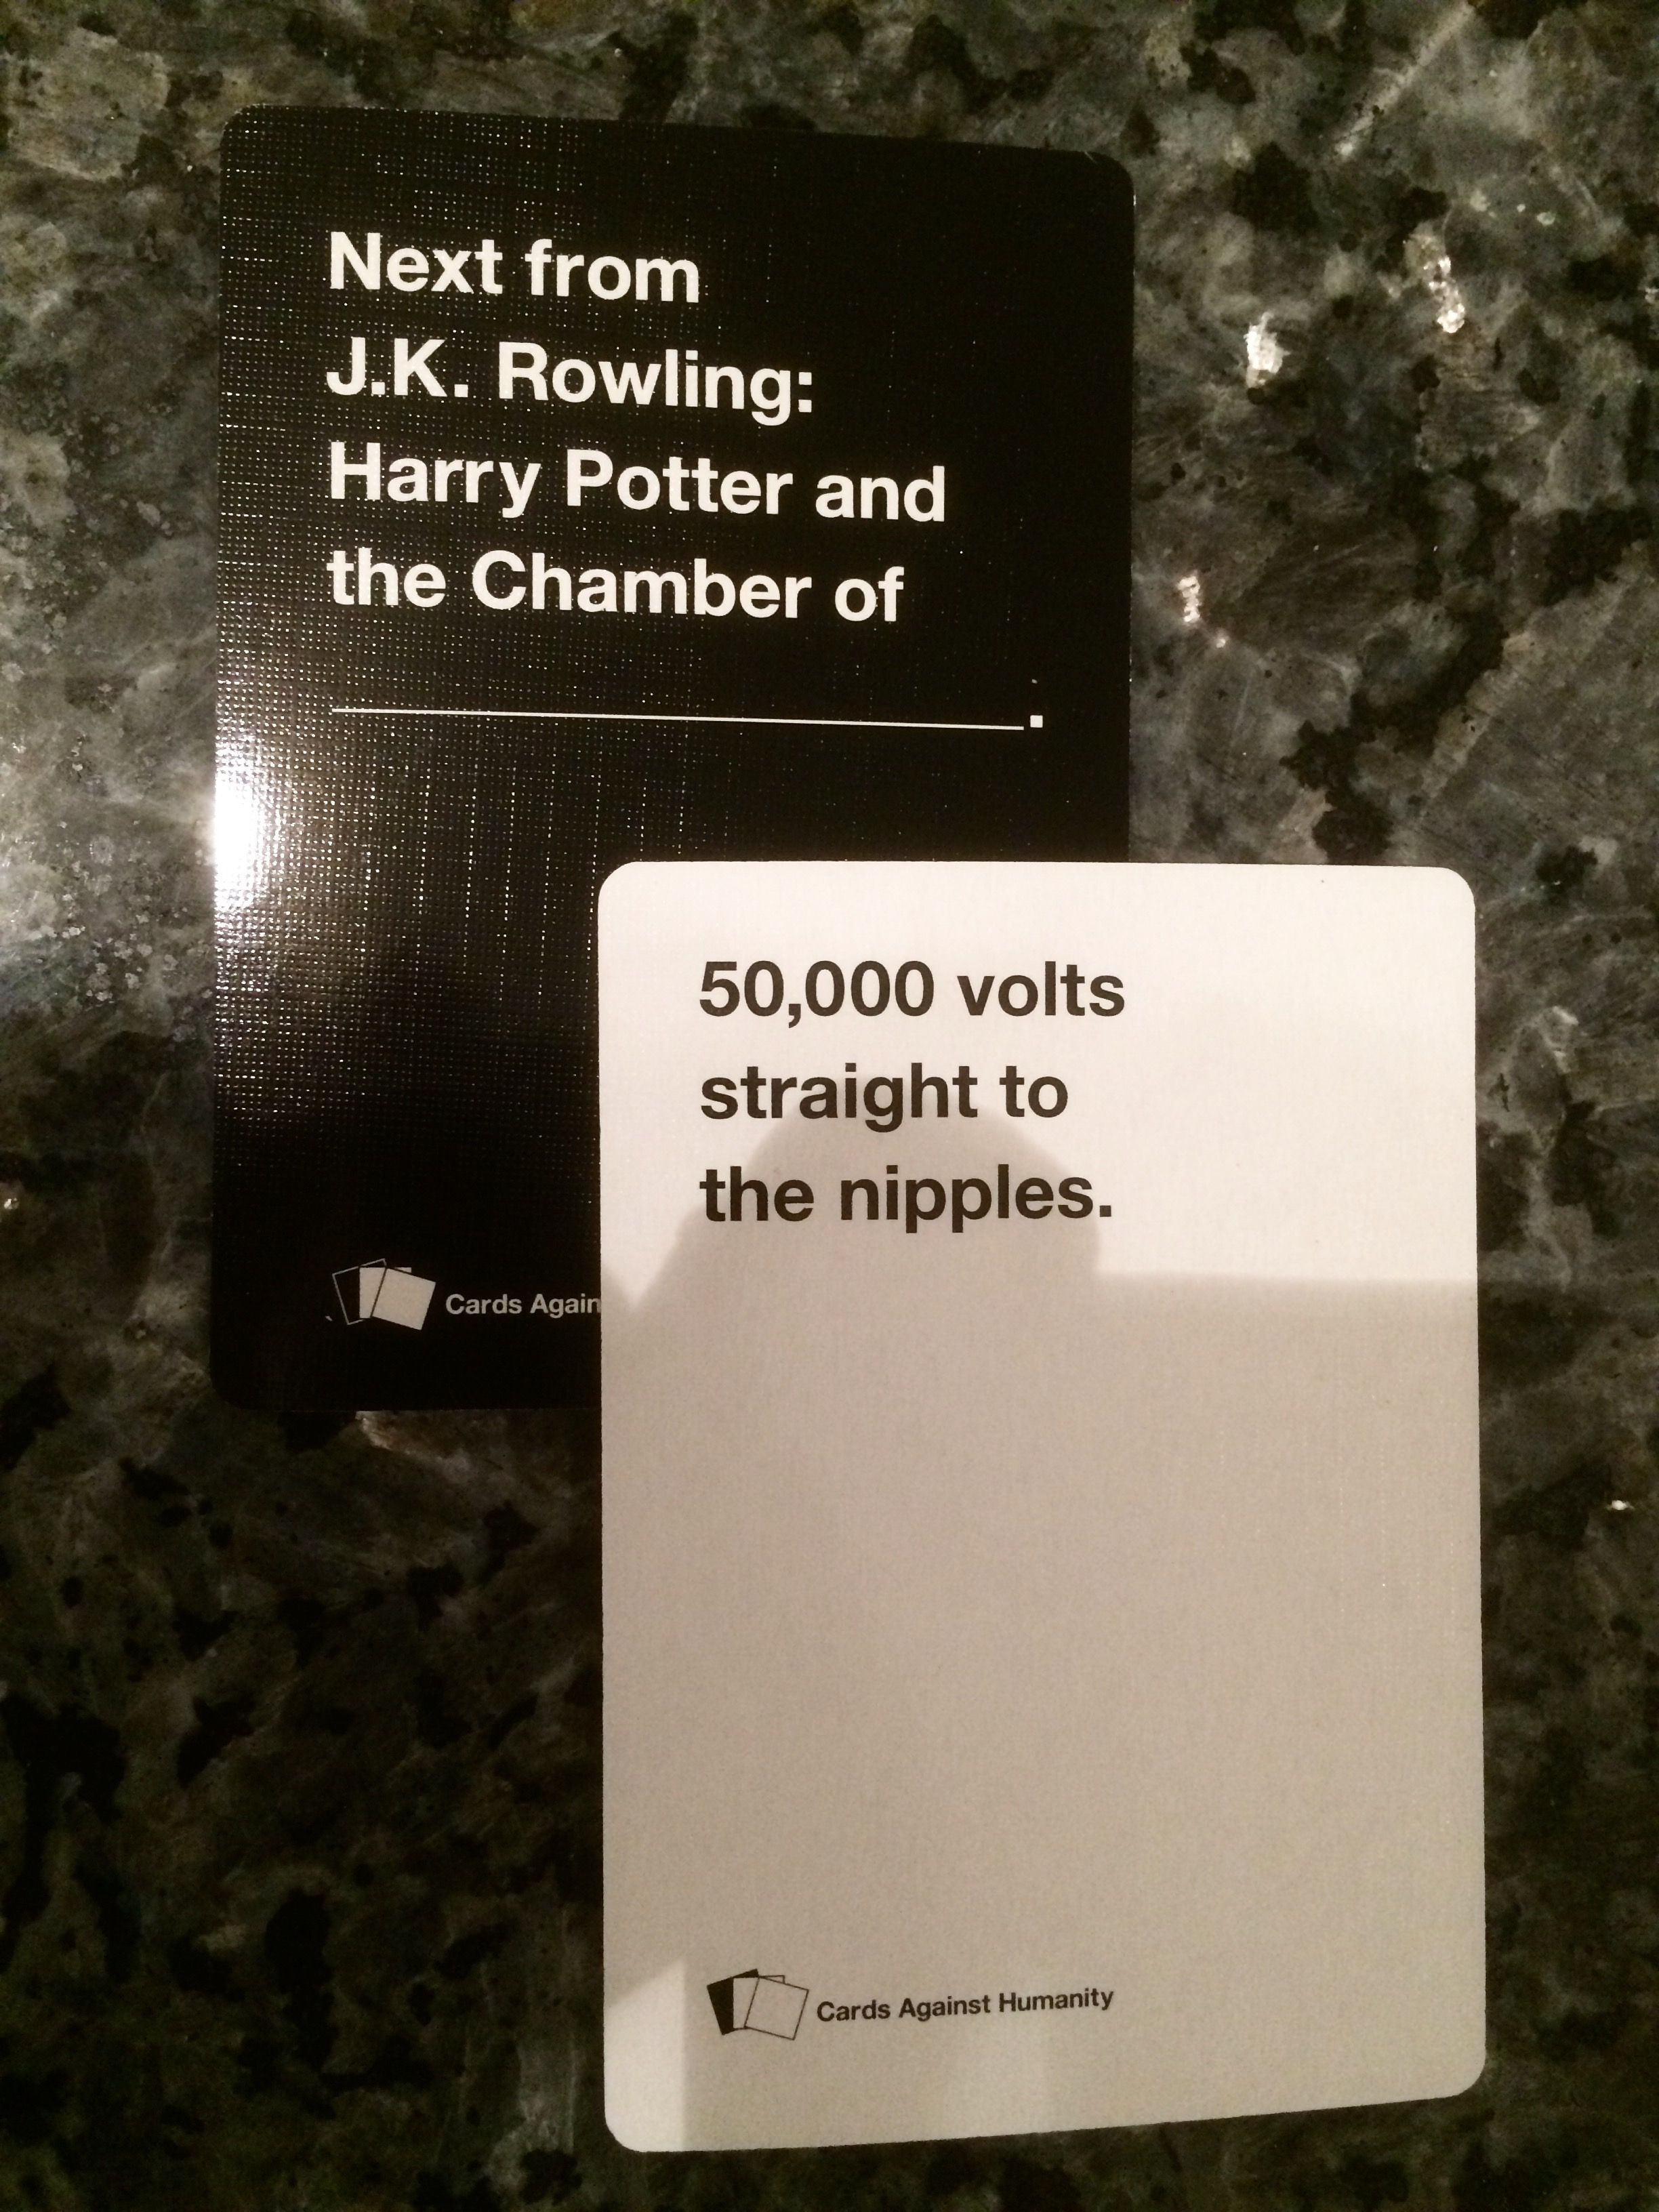 Cards Against Humanity, my first two picks.